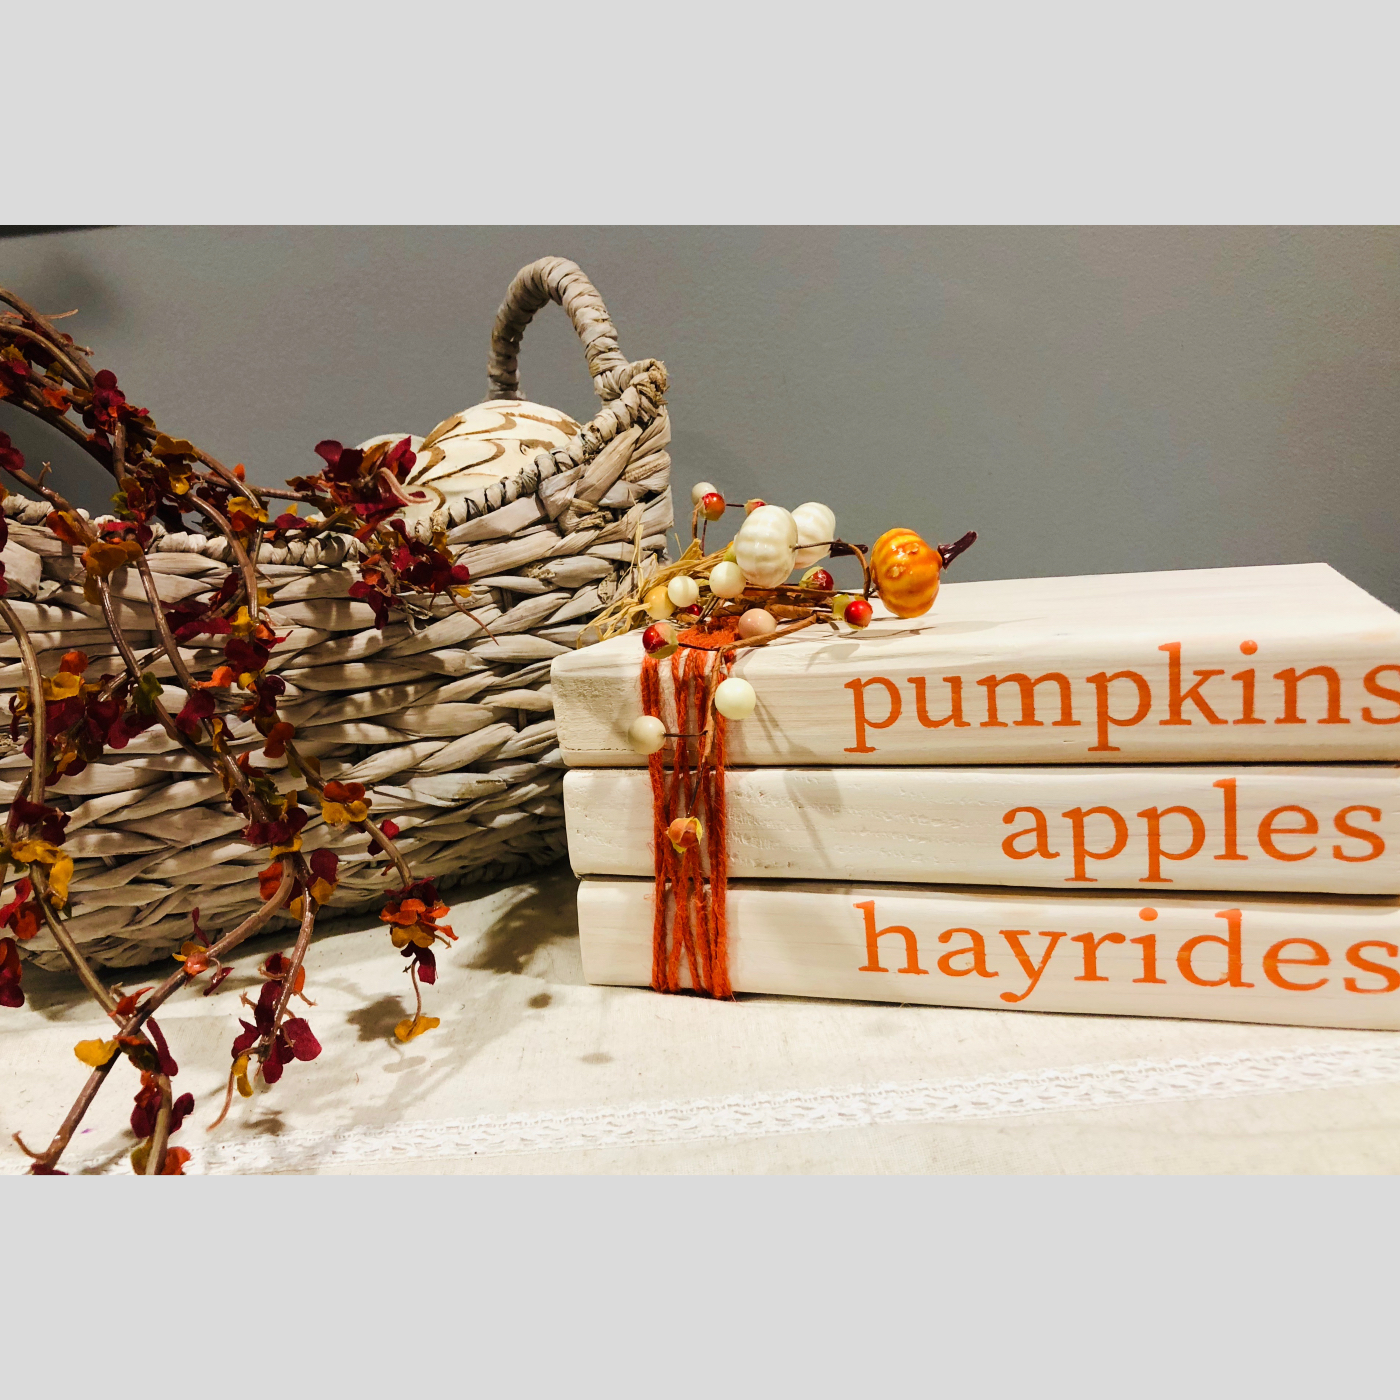 Stacked Books- Pumpkins, Apples, Hayrides DIY Wood Signs Bethlehem PA